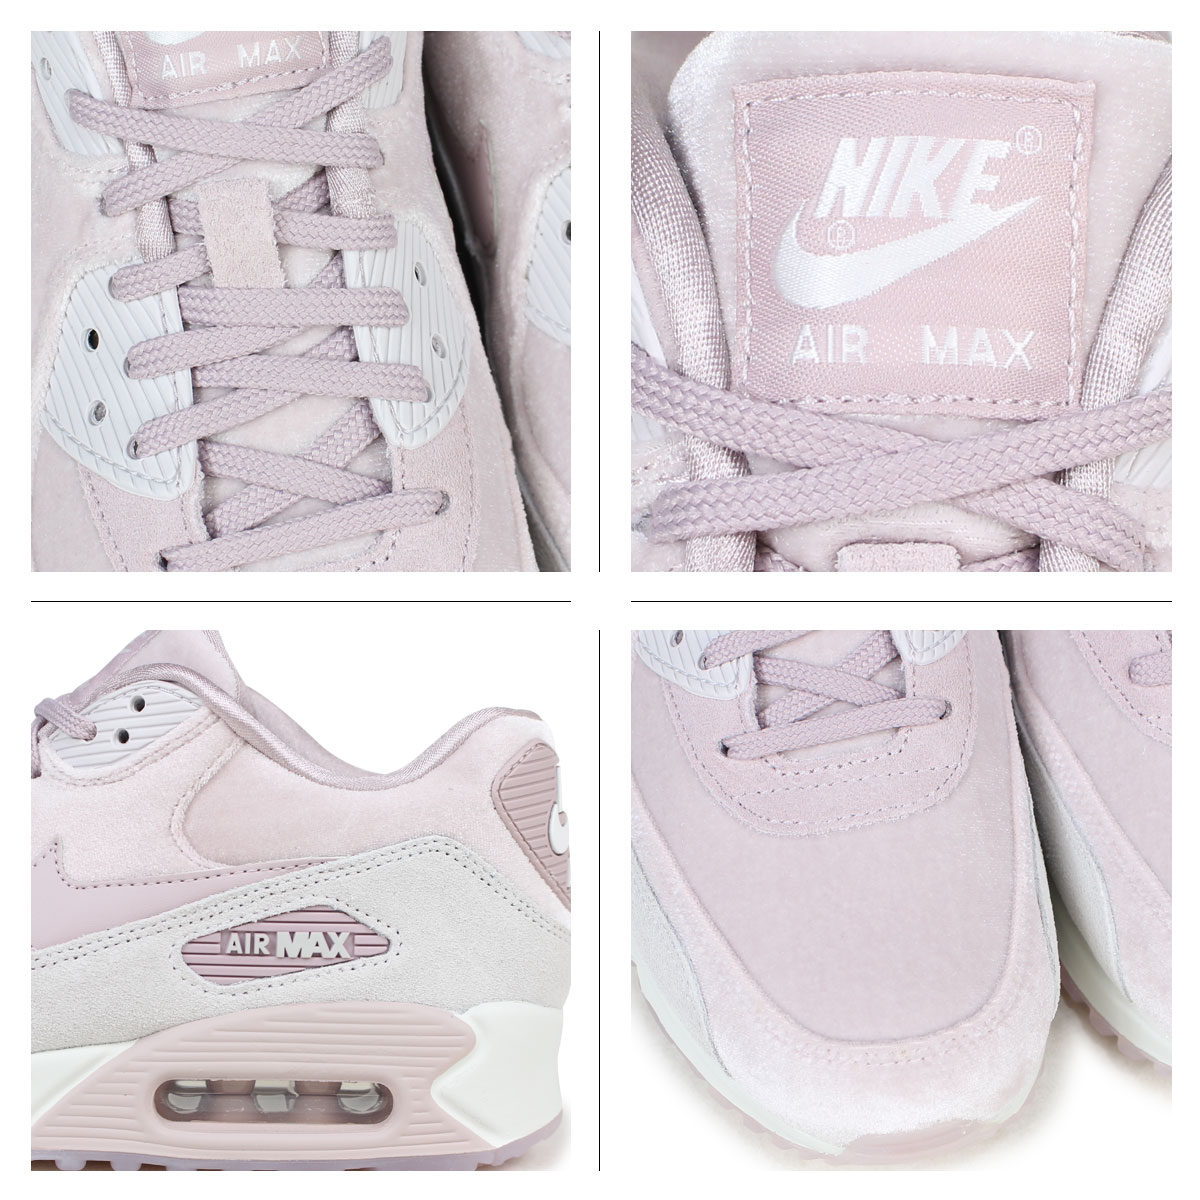 NIKE WMNS AIR MAX 90 LX Kie Ney AMAX 90 Lady's sneakers 898,512 600 shoes pink